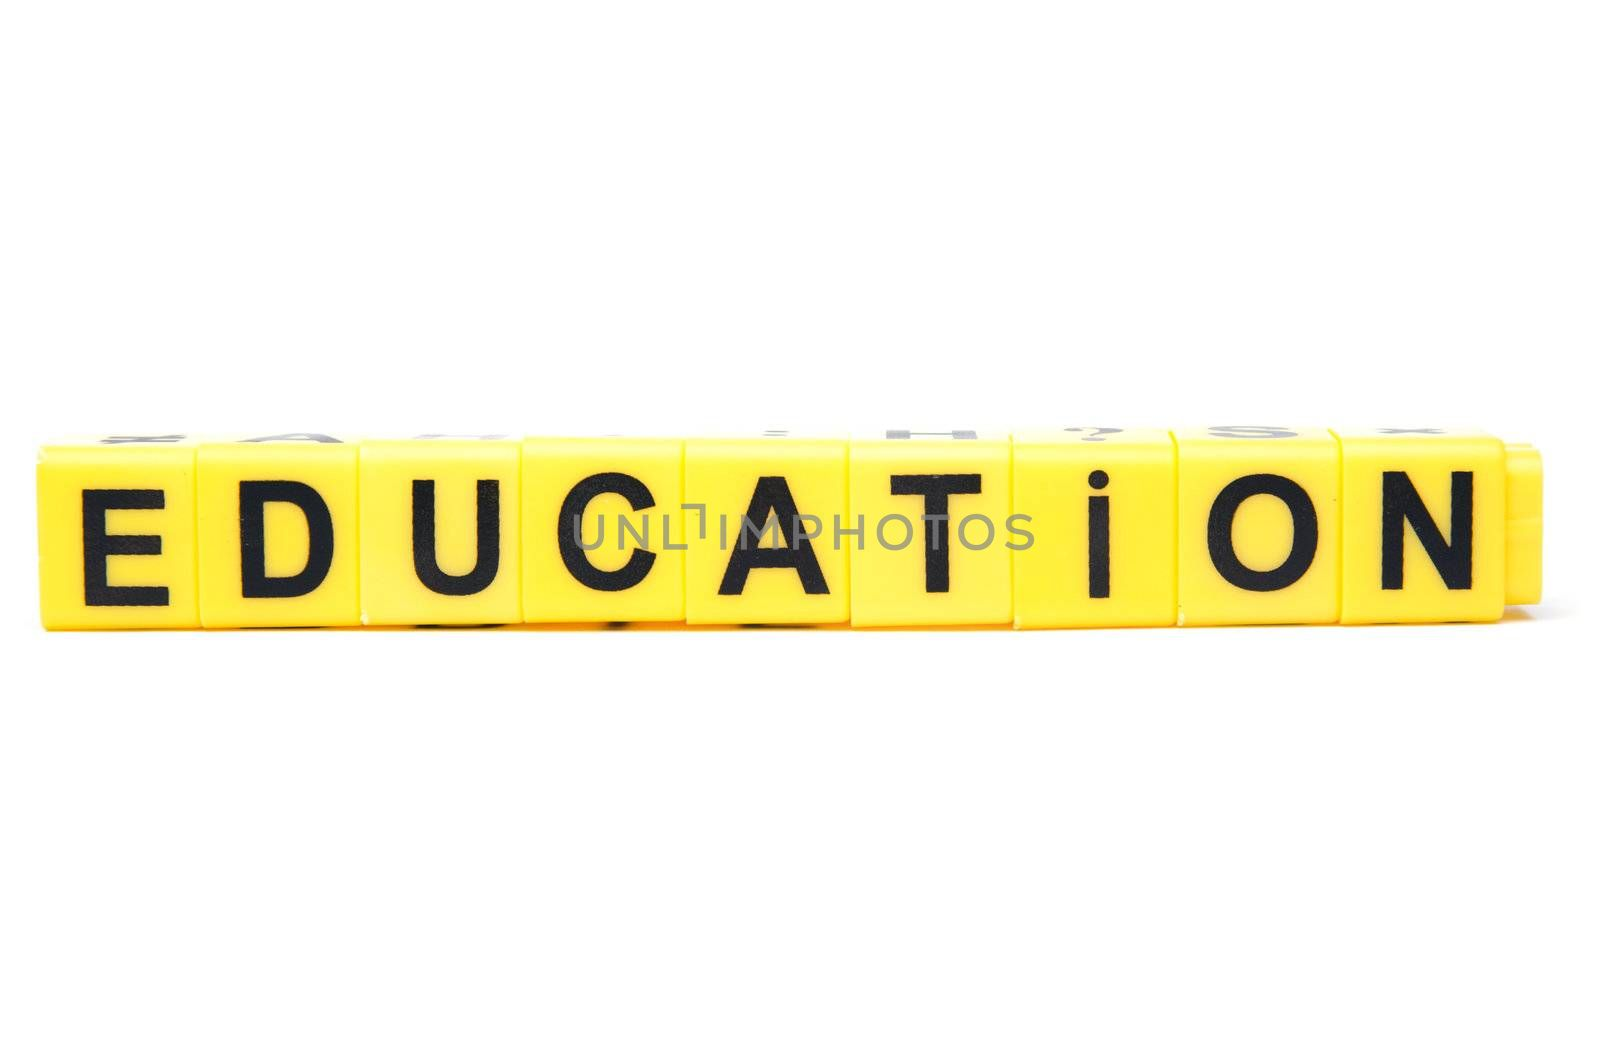 An image of yellow blocks with word ''education''on them